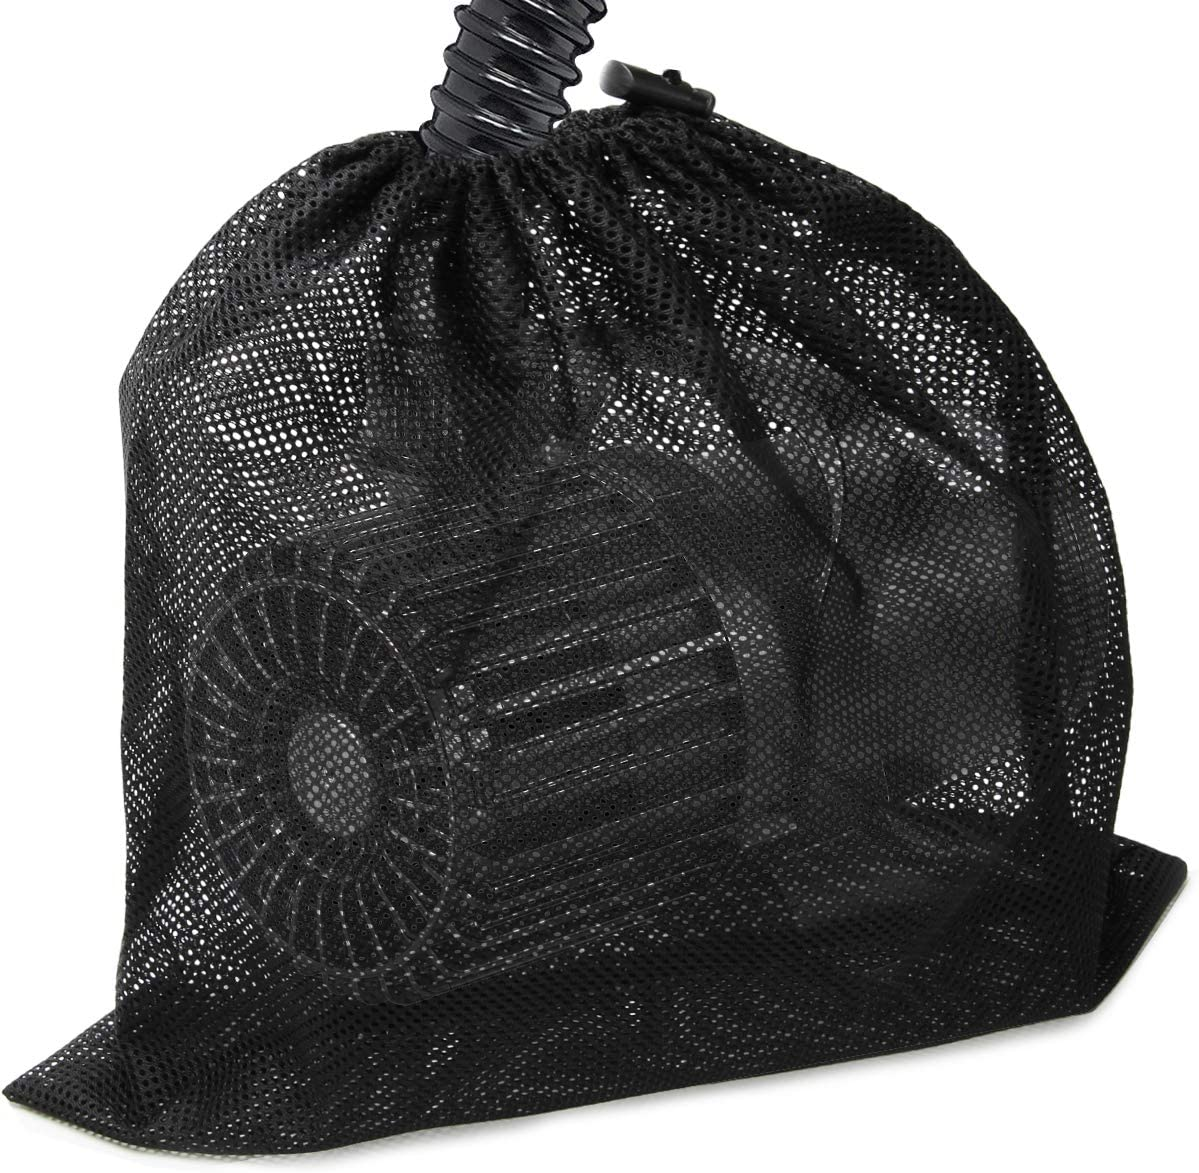 "Coolrunner Large Pump Barrier Bag, 17.3""x 17.3"" Pond Pump Filter Bag, Black Media Bag Large Pump Mesh Bag for Pond Biological Filters(Black)"